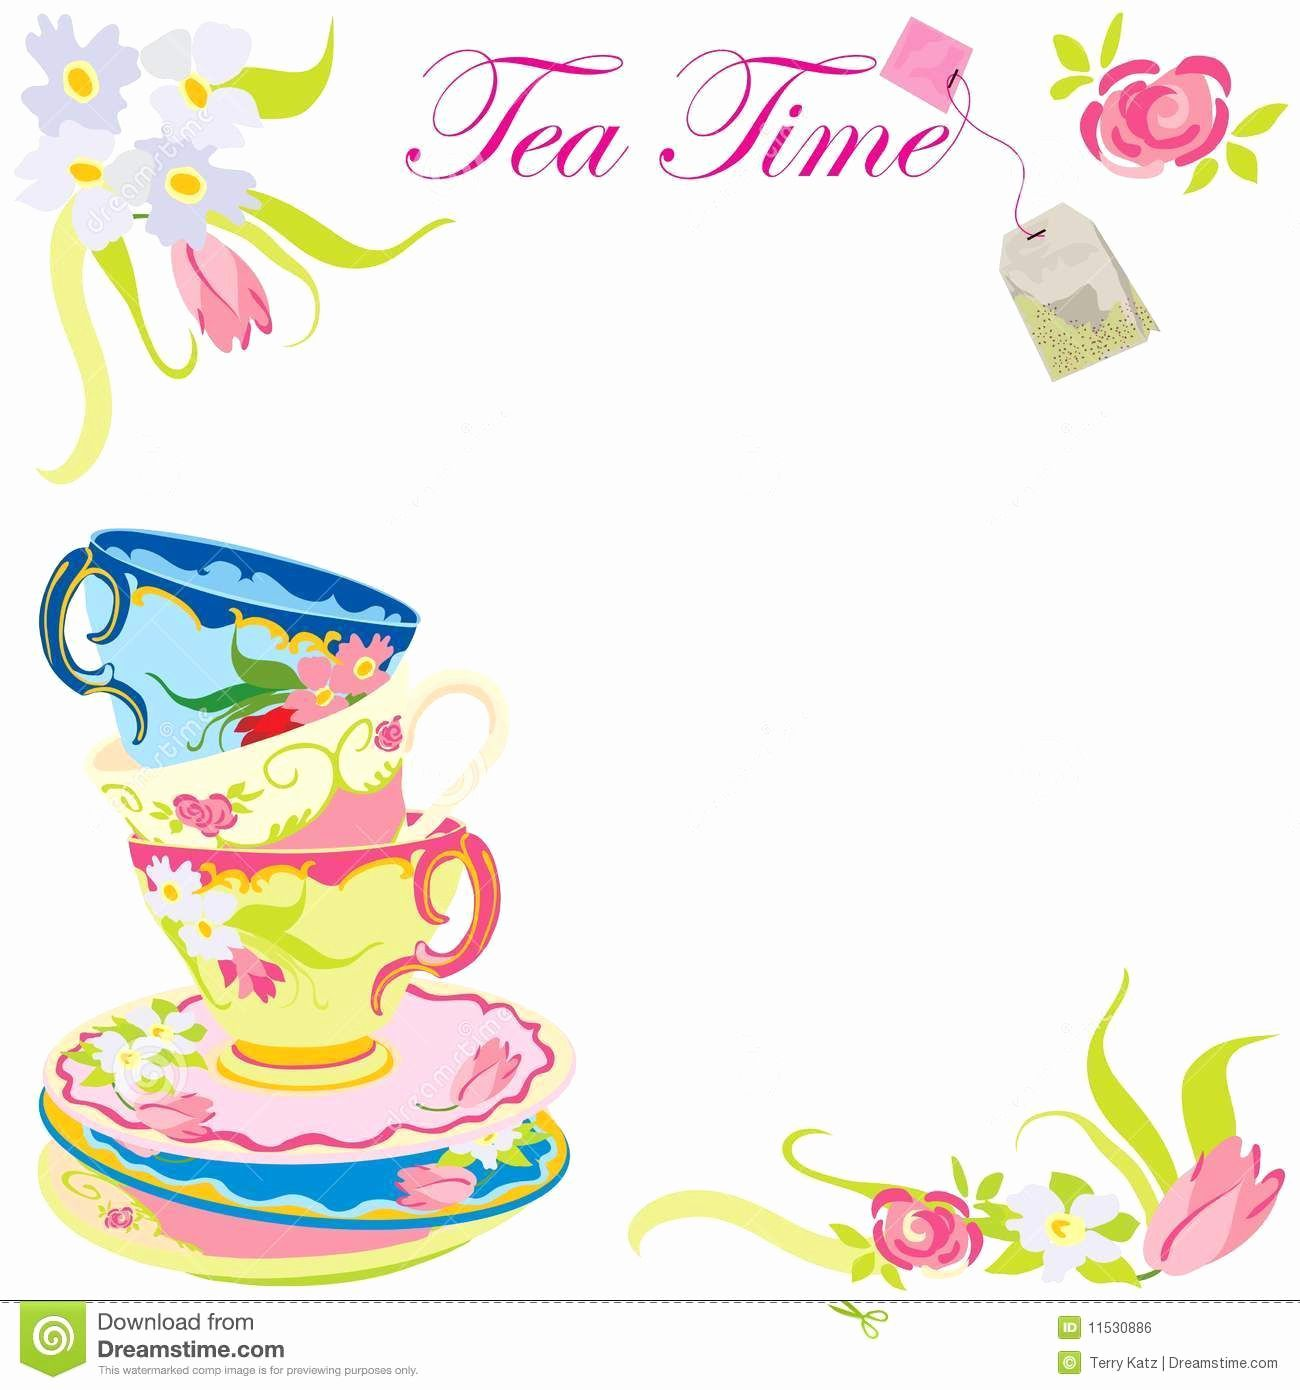 009 Stirring Tea Party Invitation Template Sample  Online LetterFull